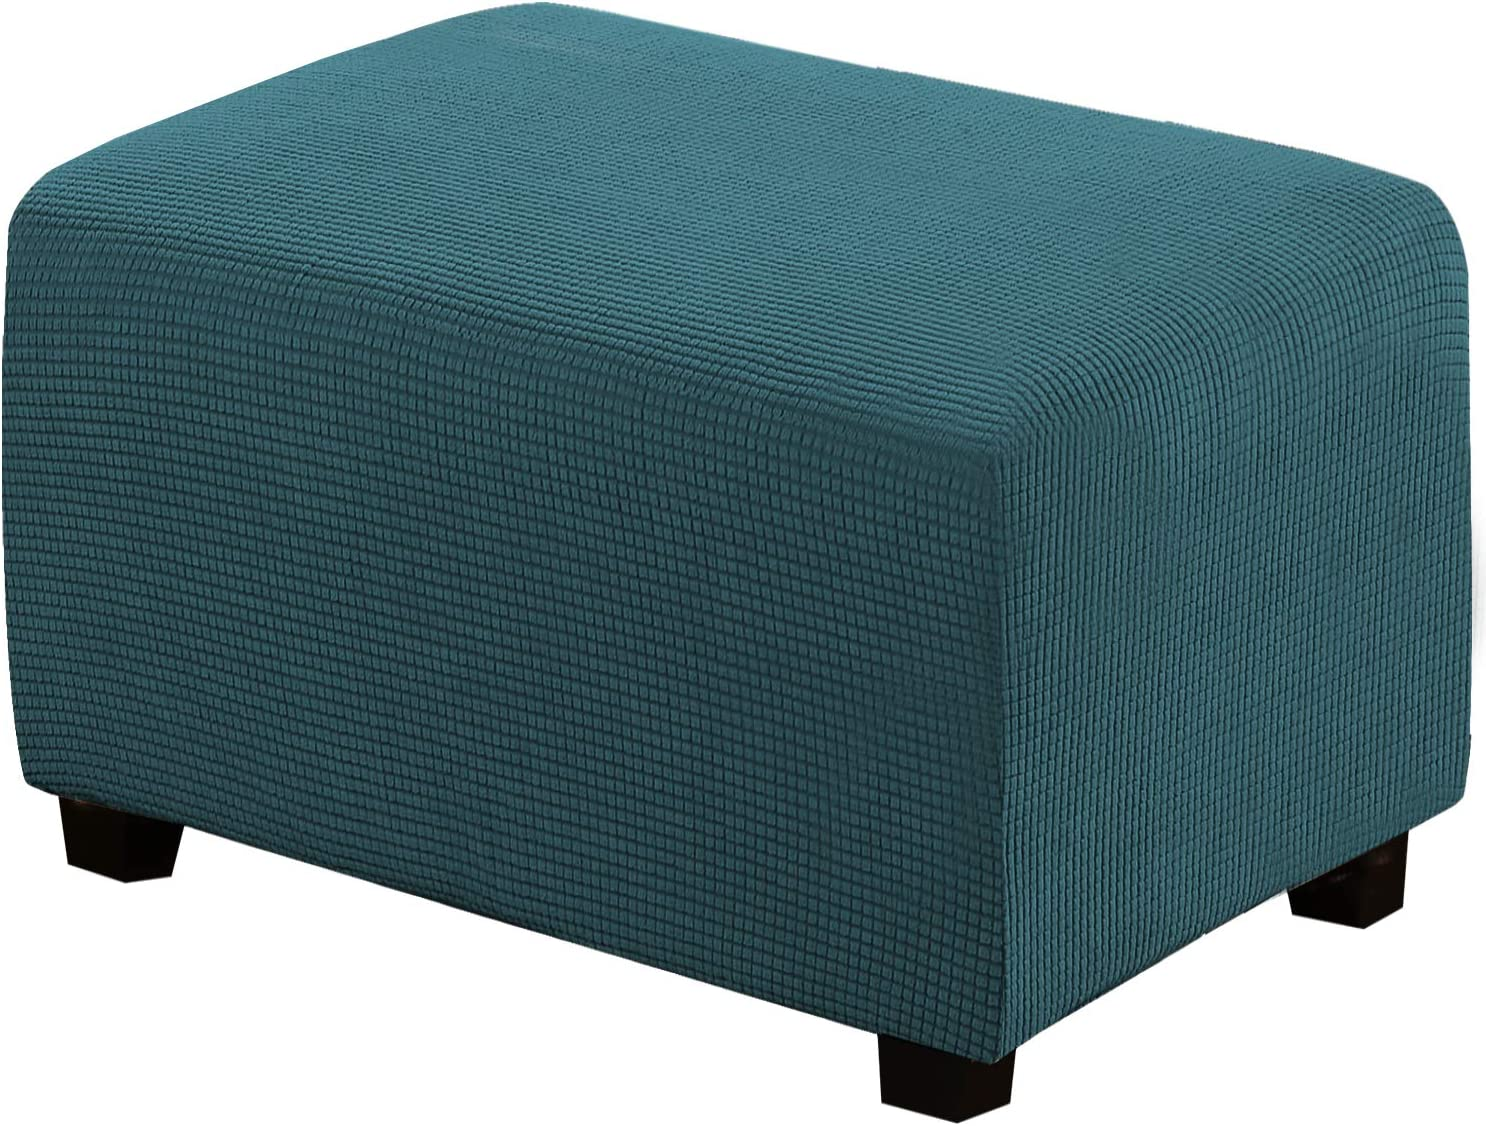 H.VERSAILTEX Ottoman Slipcovers Rectangle Footrest Footstool Protector Covers Stretch Fabric Storage Ottoman Covers, High Spandex Slipcover Machine Washable(Ottoman X-Large, Deep Teal)